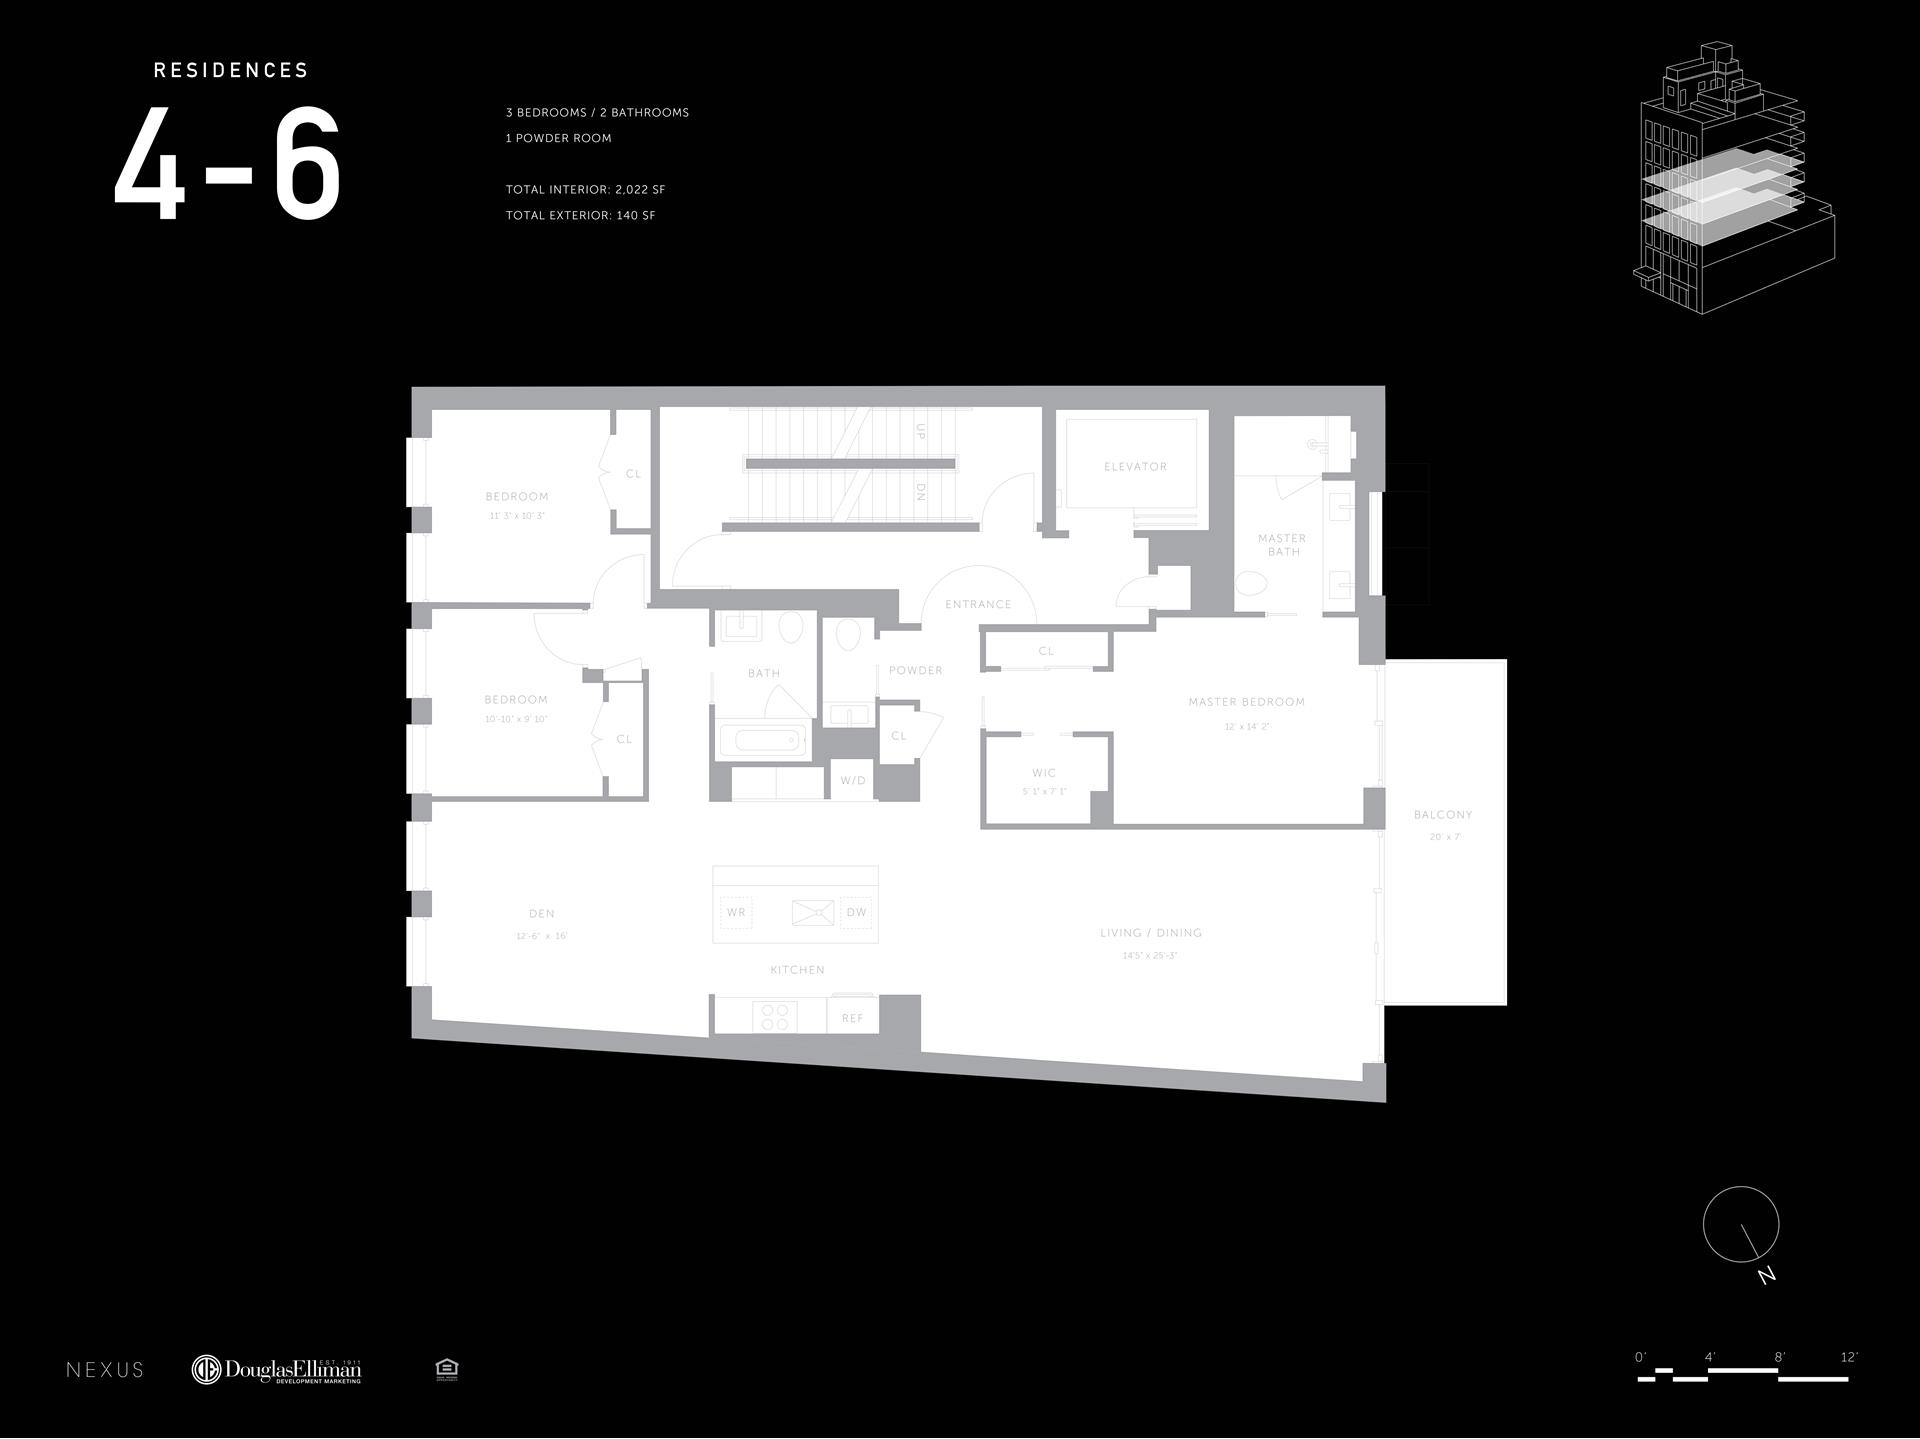 Floor plan of 260 Bowery, 4 - Little Italy - Chinatown, New York